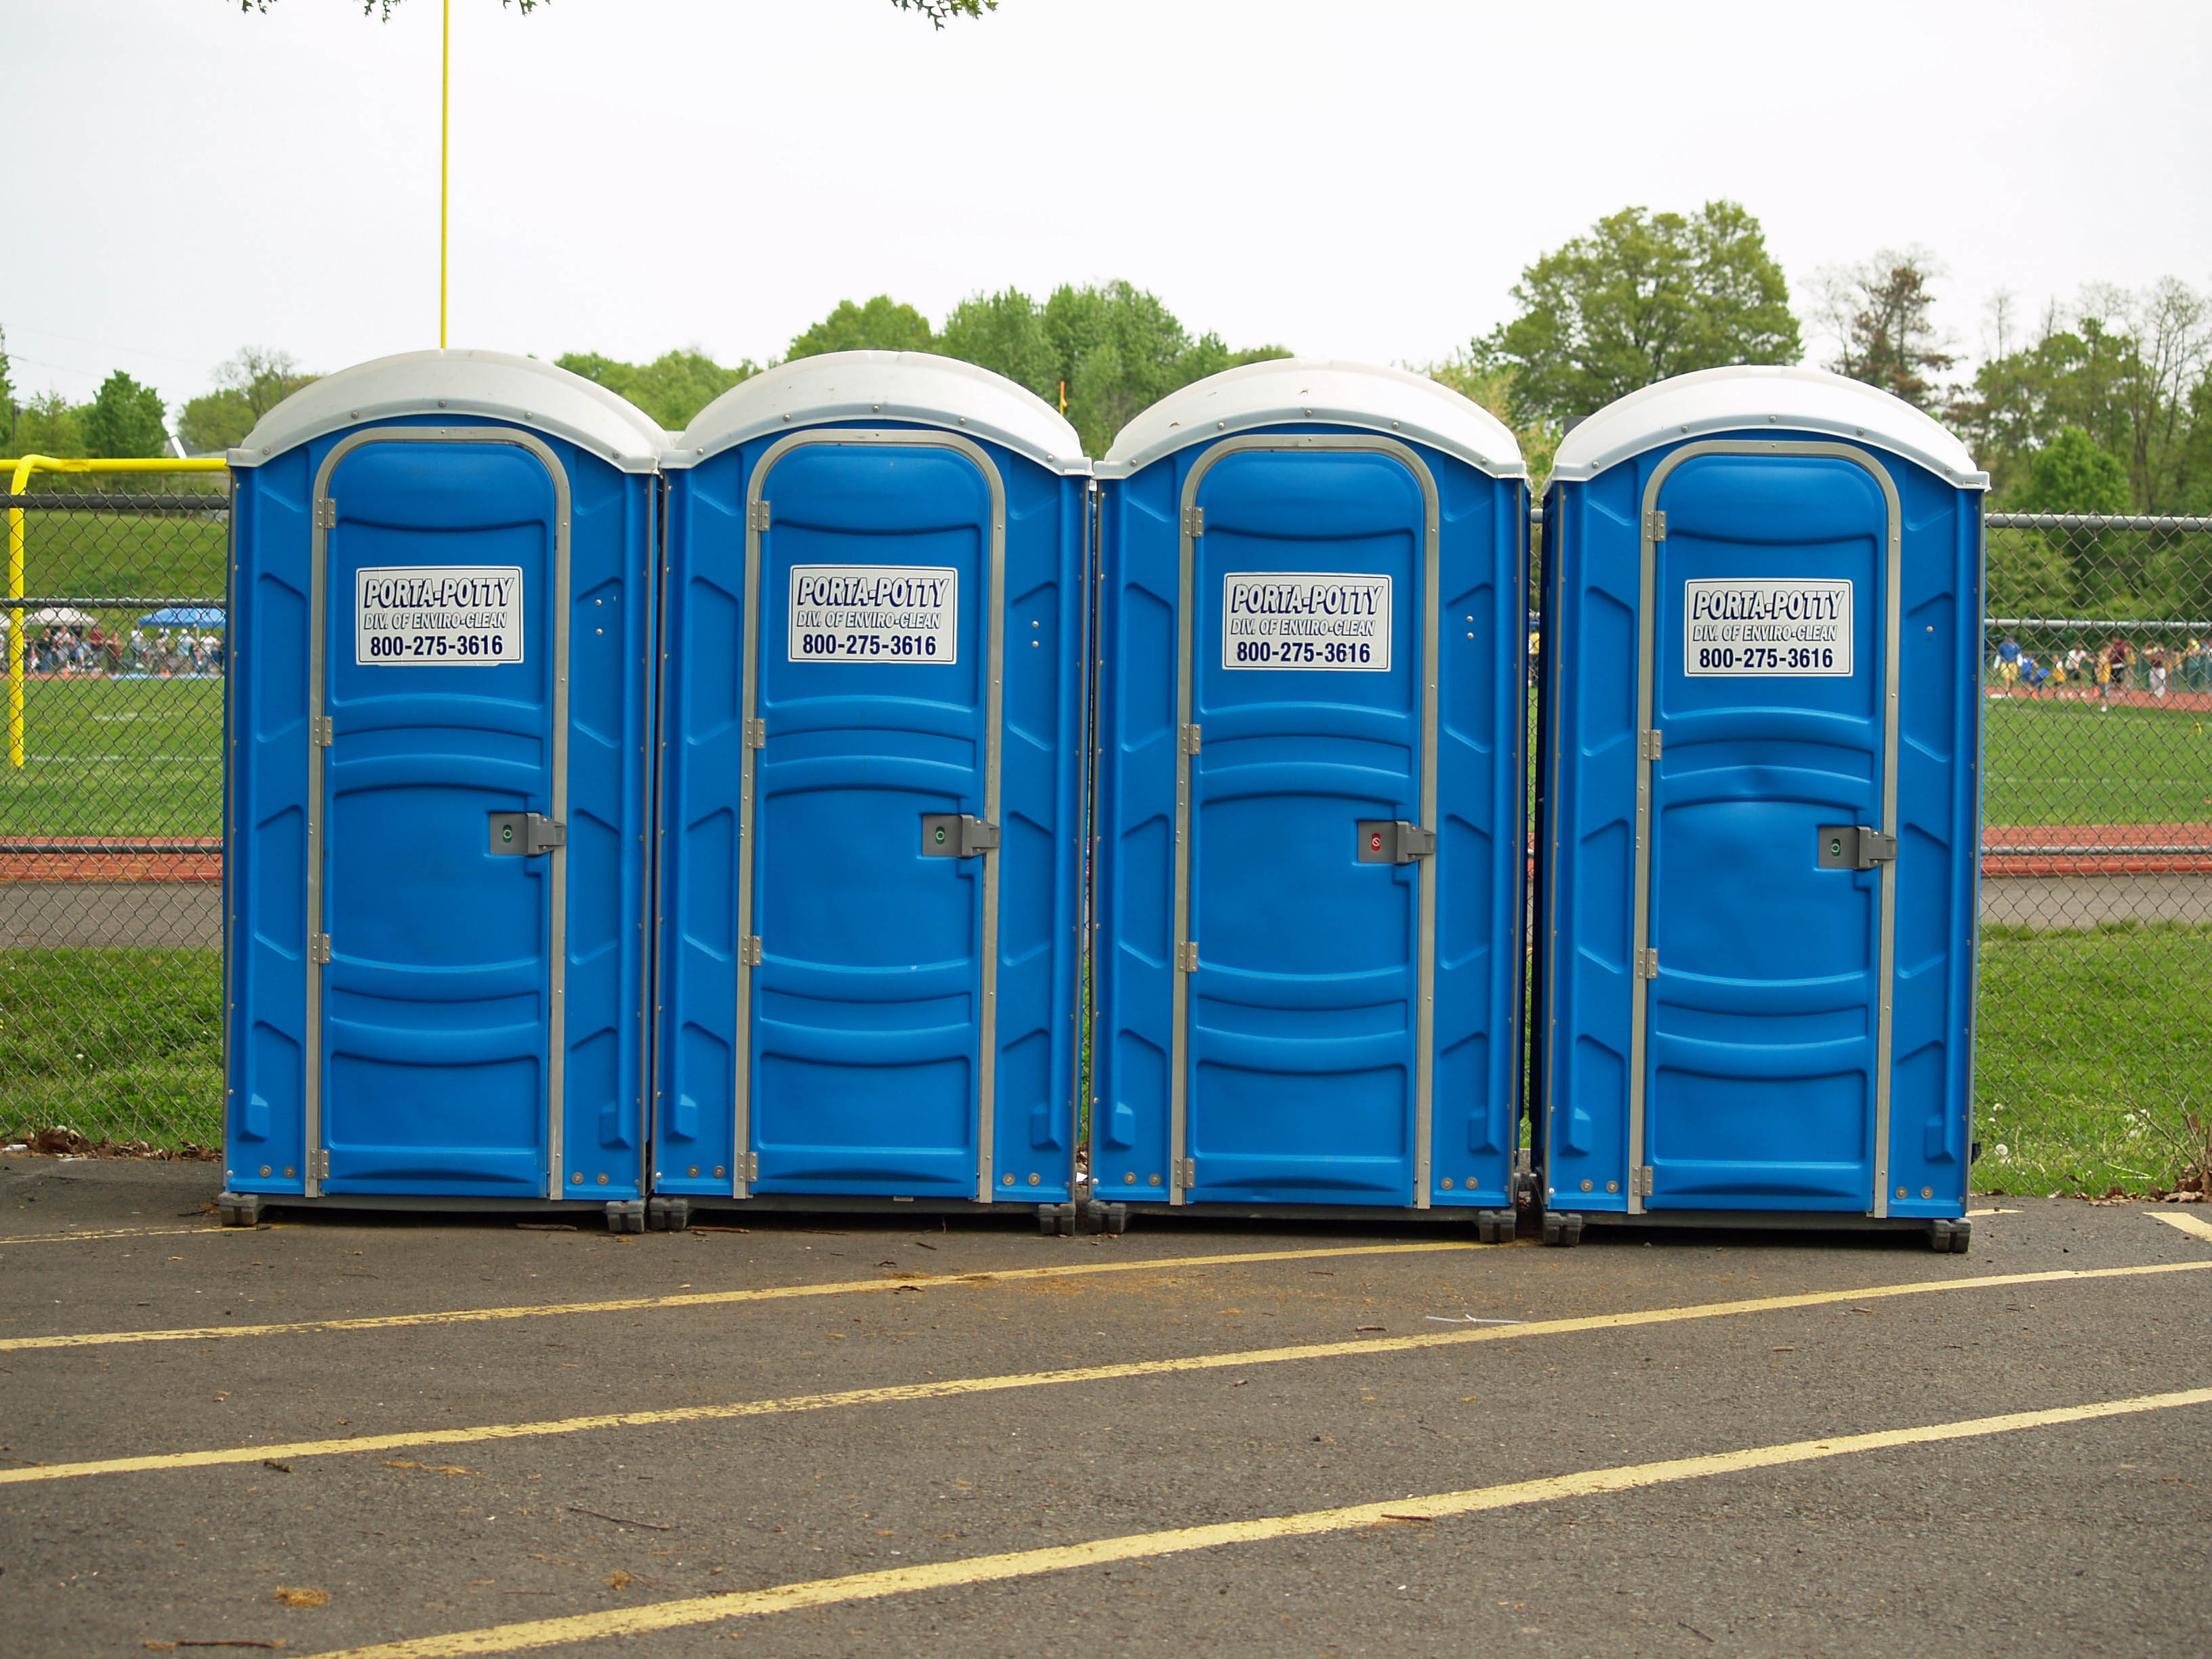 David Nassau Ironman Triathlete port o potty